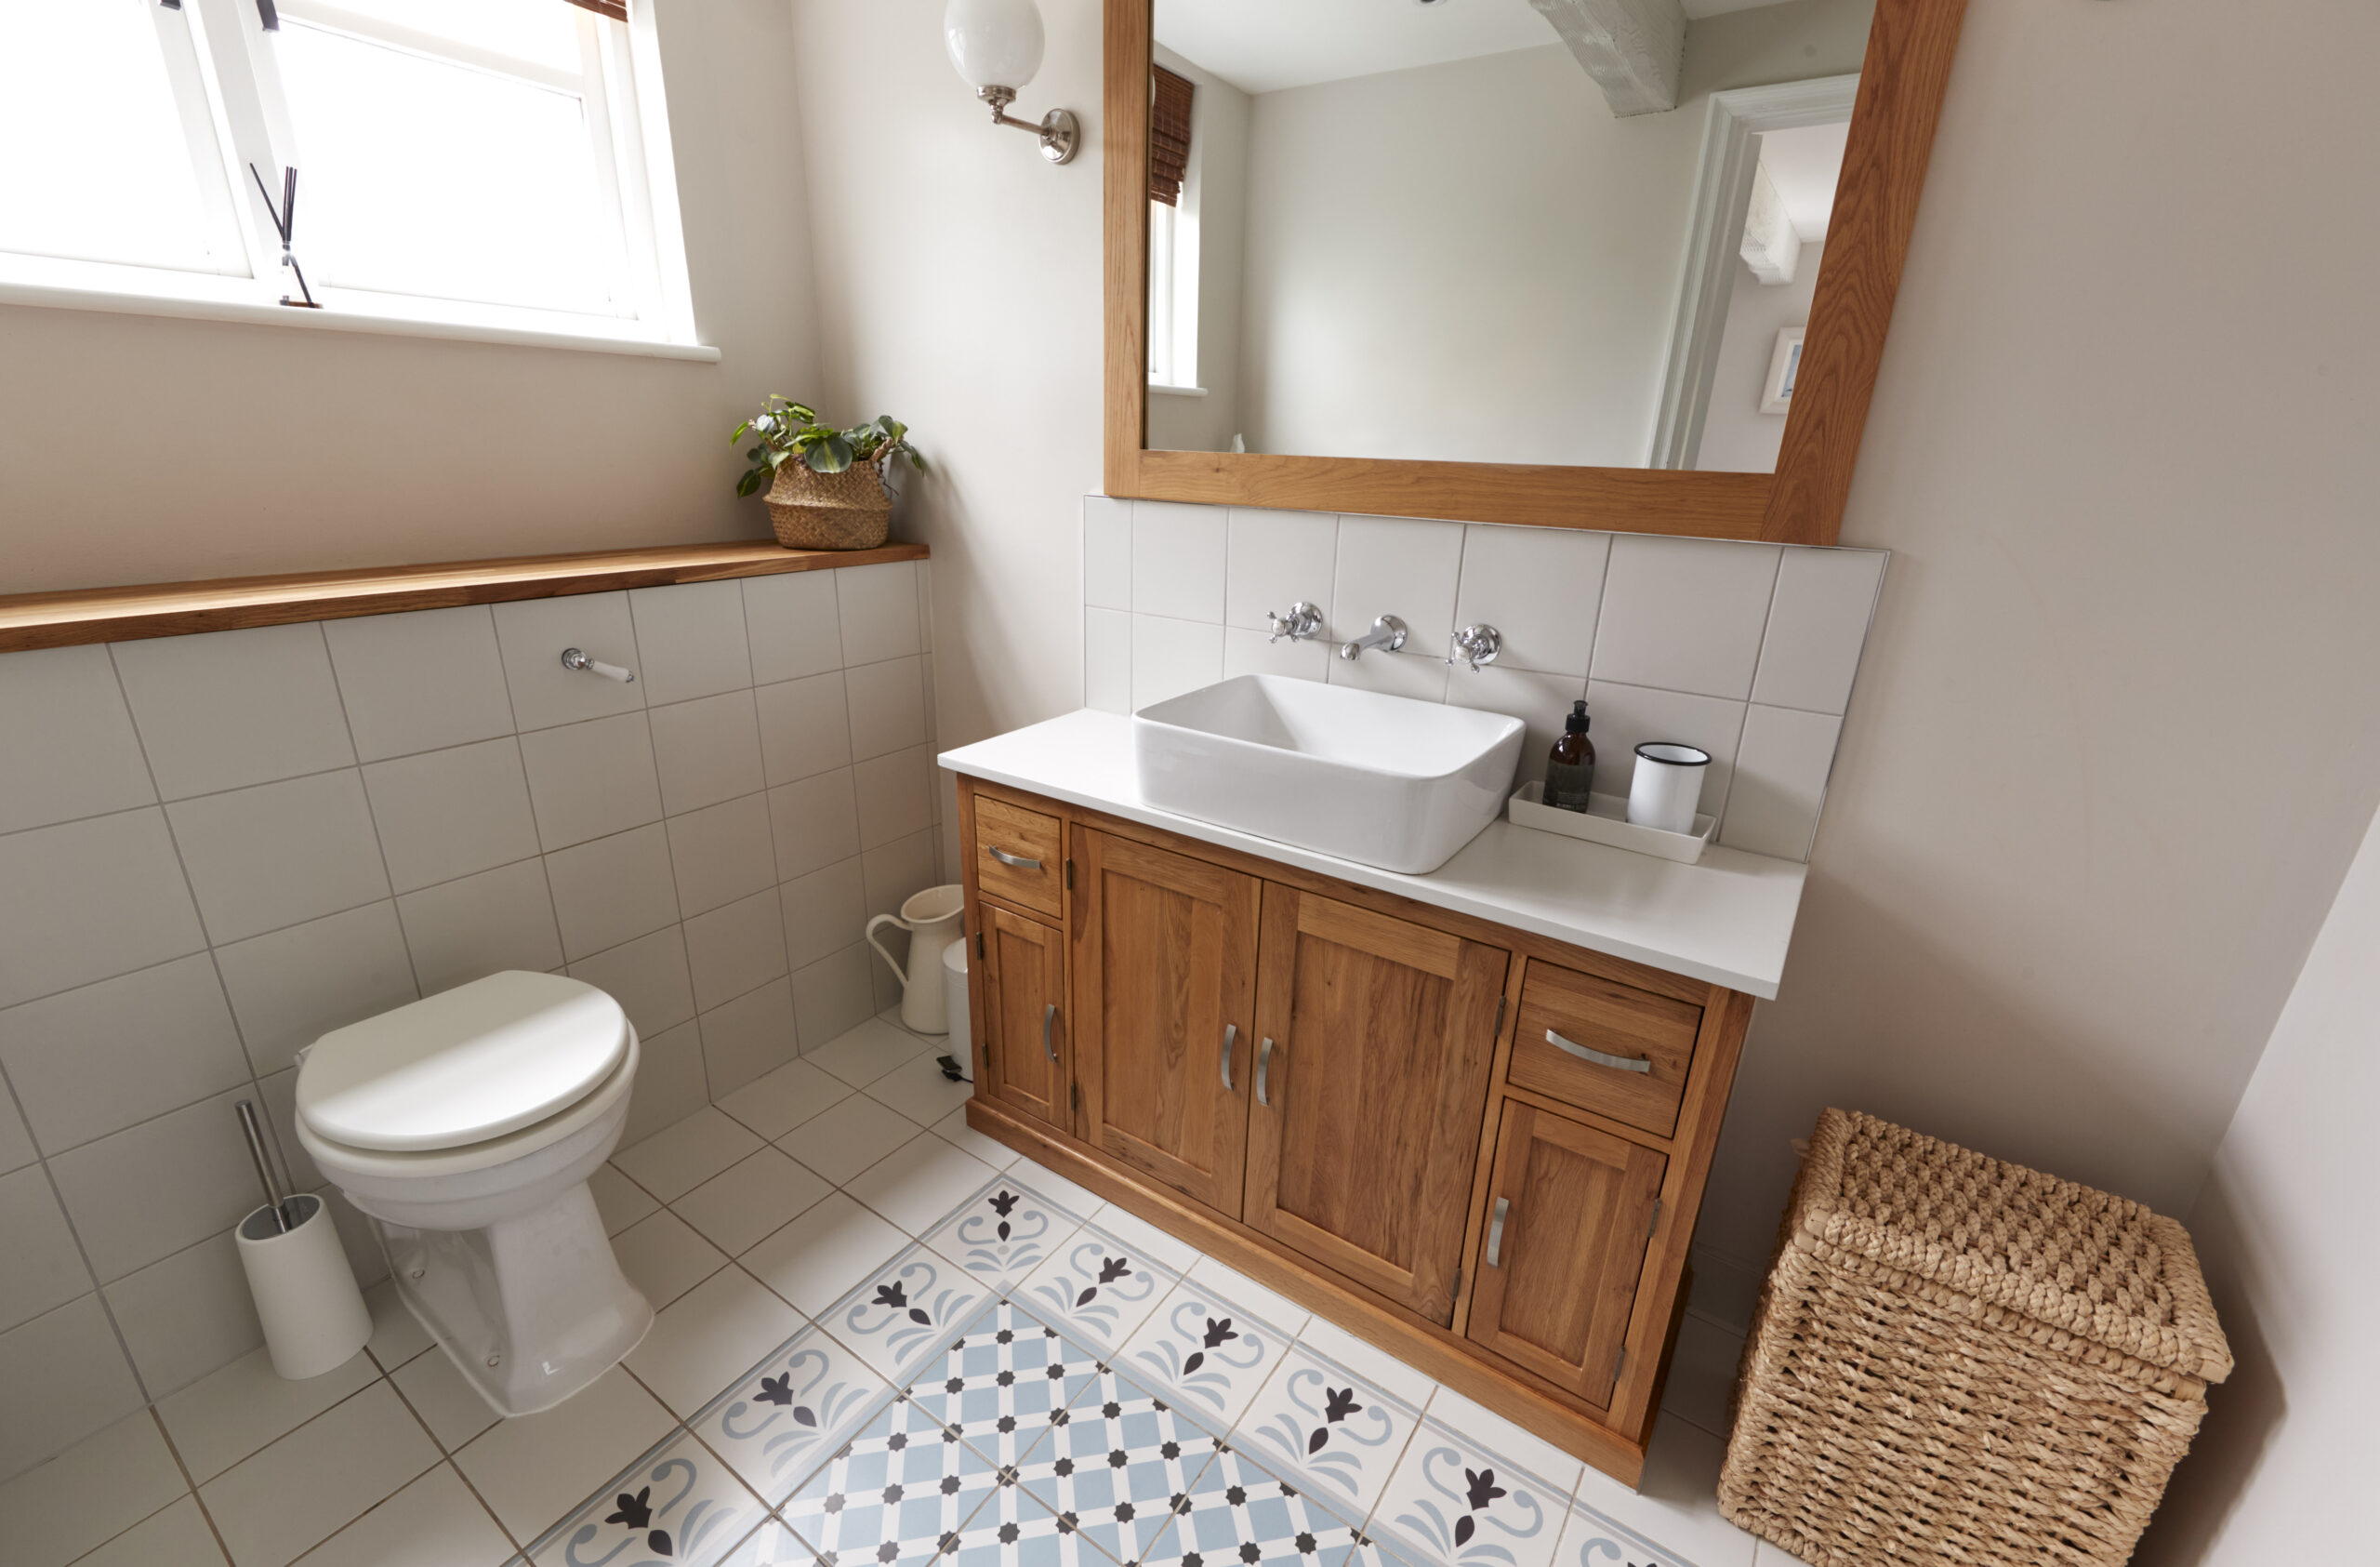 Interior View Of Beautiful Bathroom With Wash Basin And WC  In Family Home